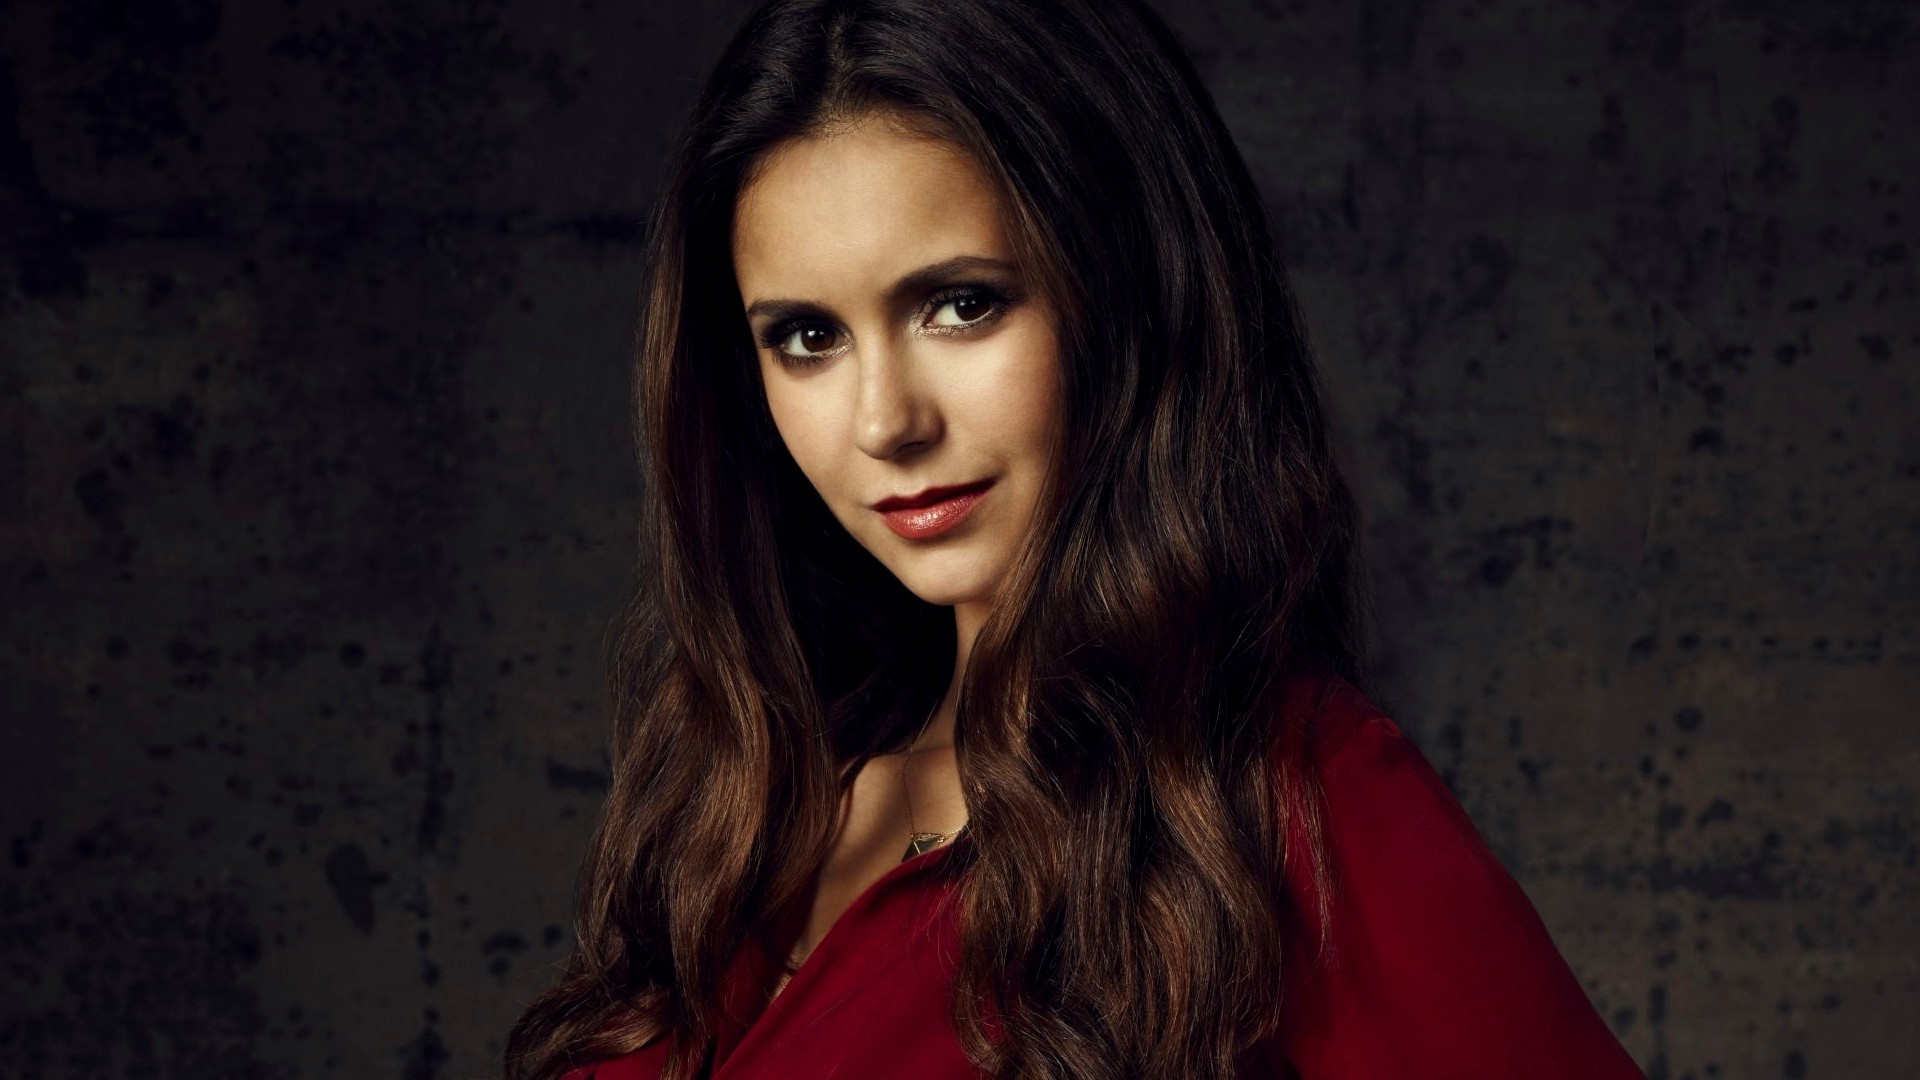 nina dobrev full hd - photo #1